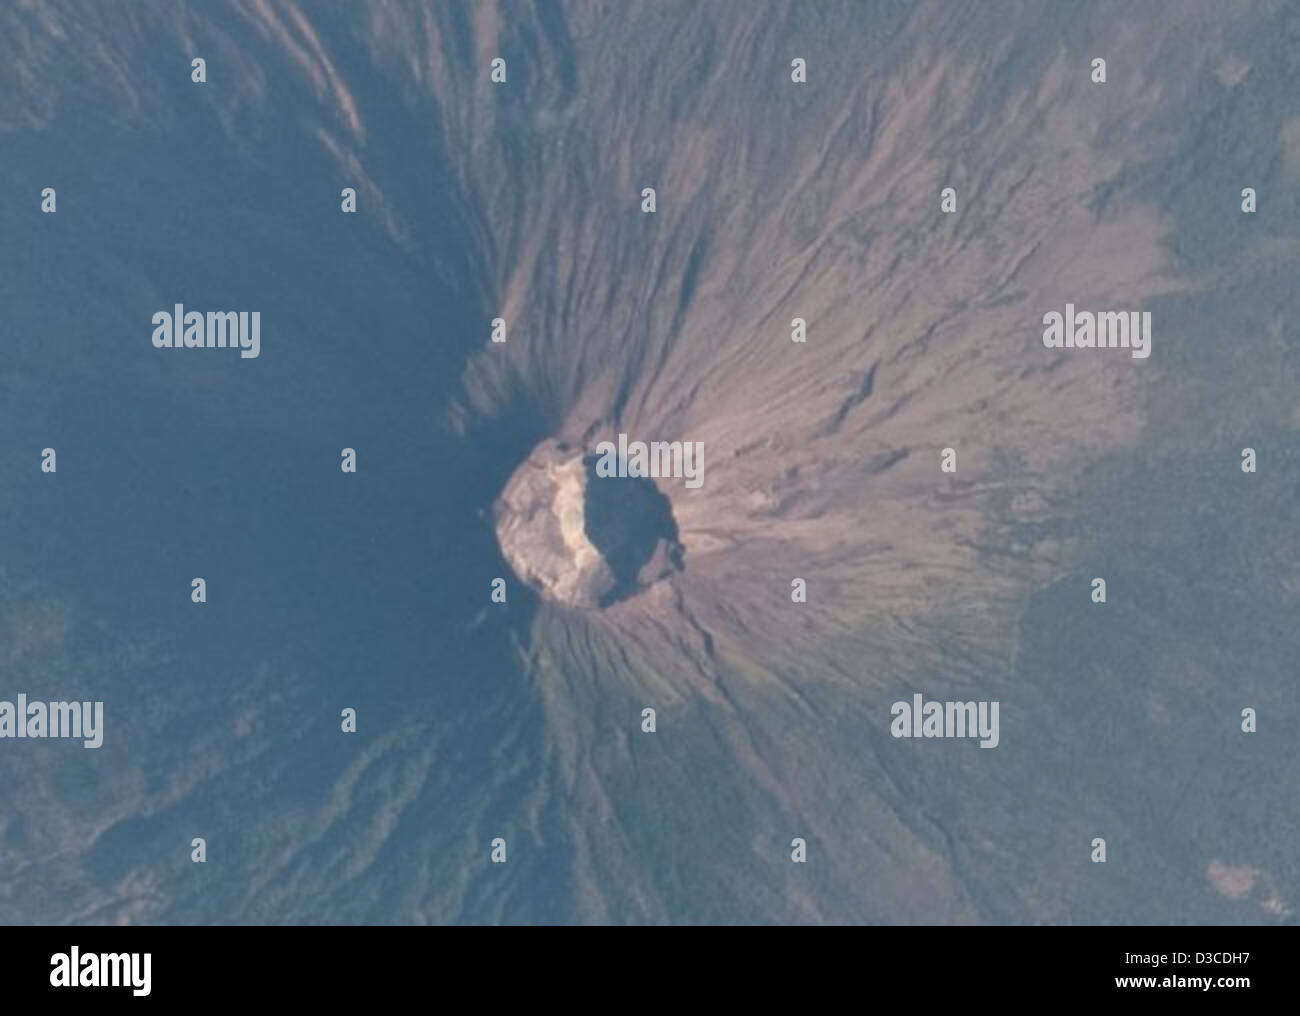 Detail: Volcanoes, Usulutan, El Salvador (NASA, International Space Station Science, 03/31/10) - Stock Image